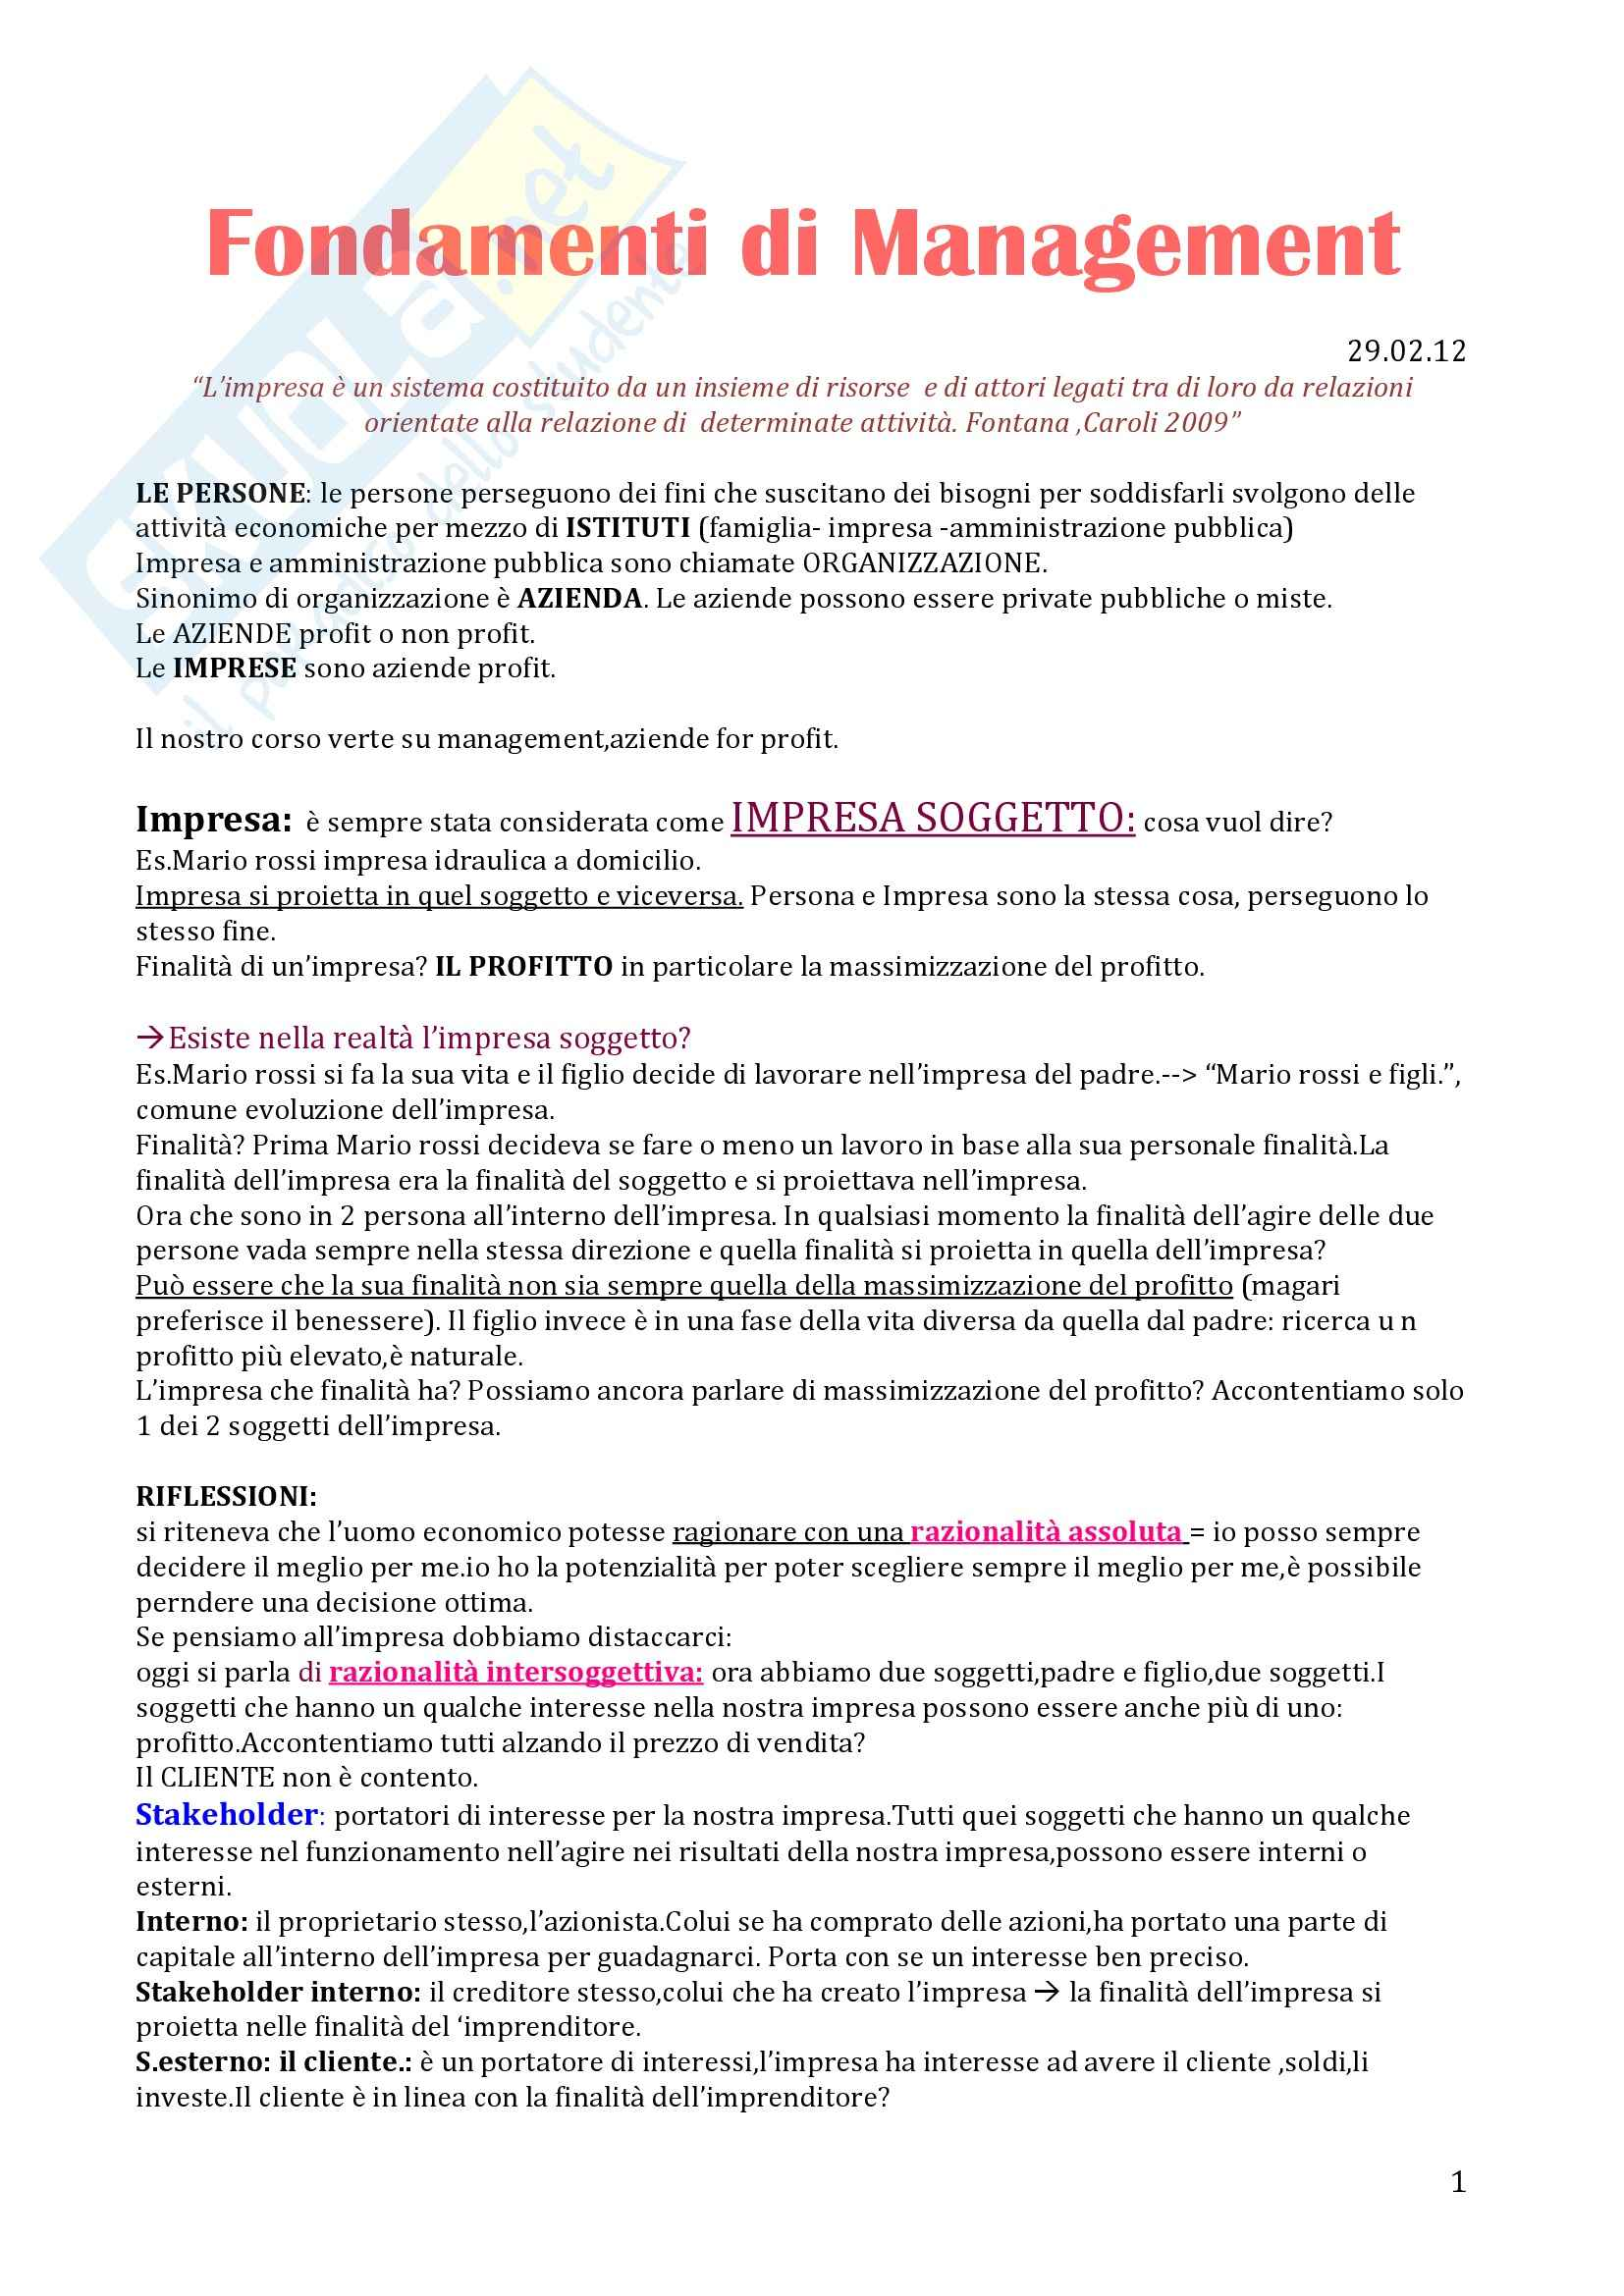 Fondamenti di Management - Appunti